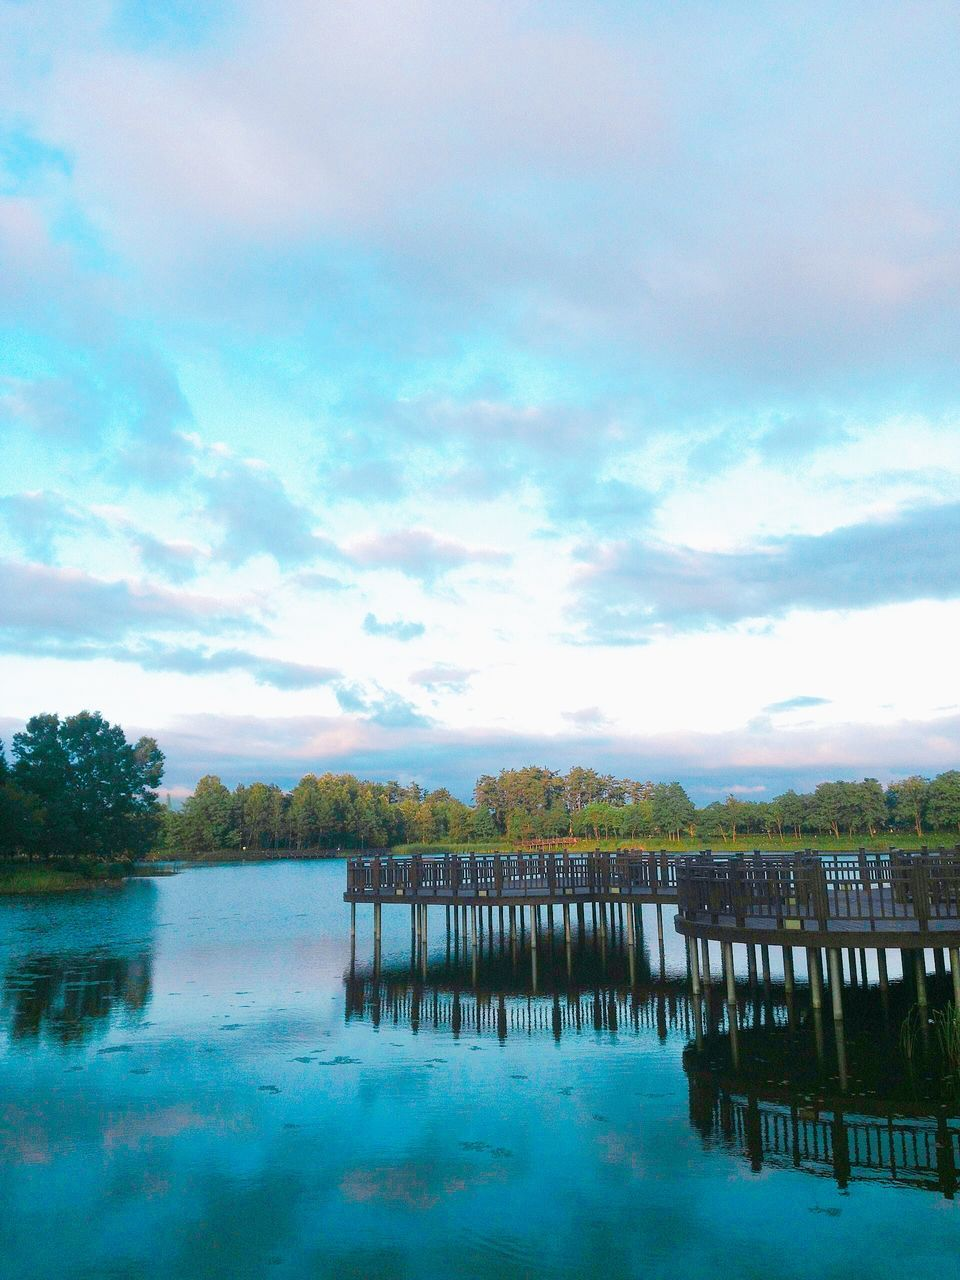 water, sky, lake, nature, outdoors, beauty in nature, cloud - sky, tranquility, scenics, tranquil scene, no people, day, tree, built structure